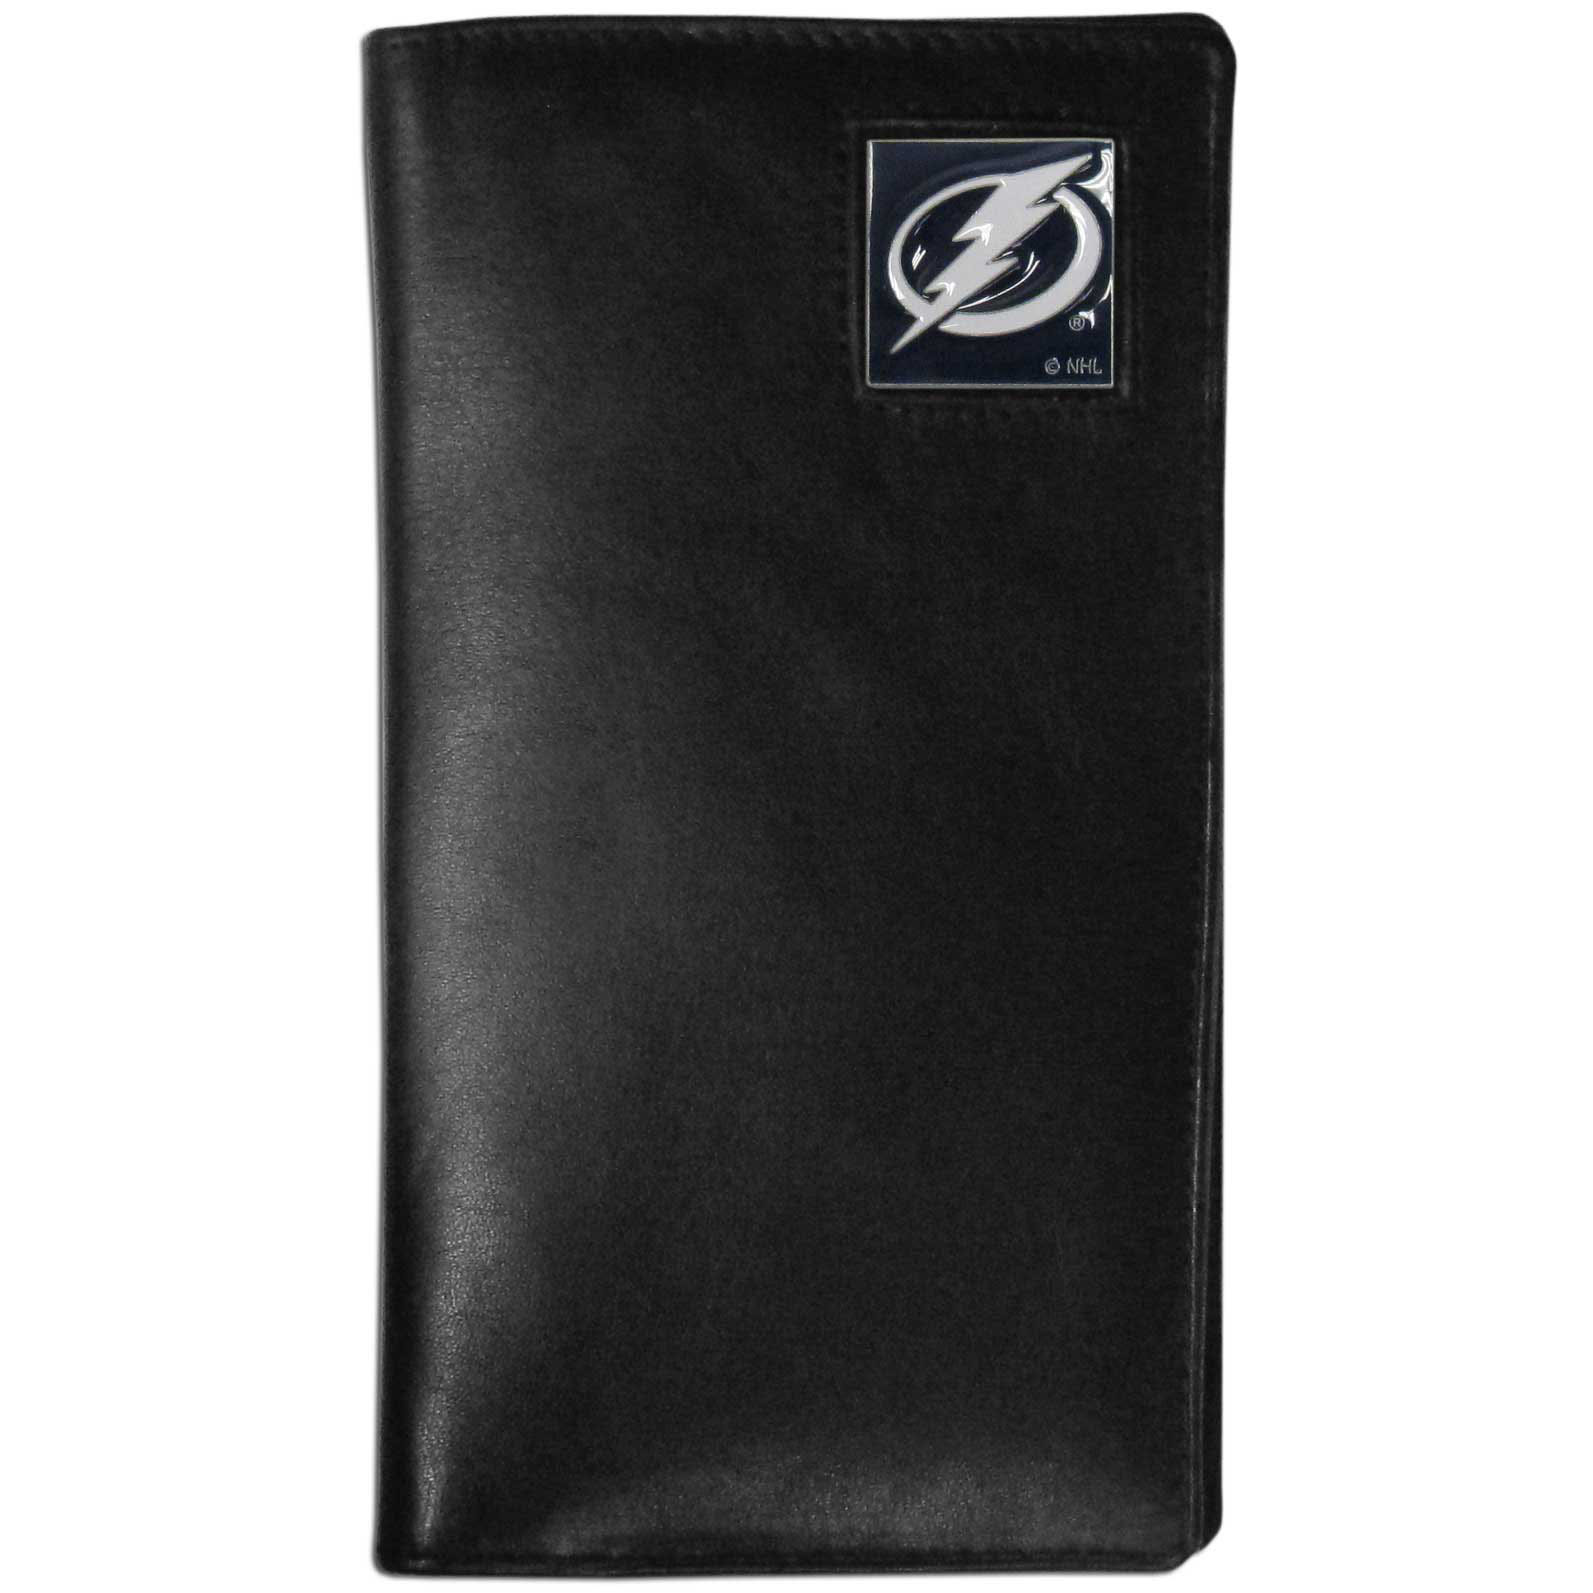 Tampa Bay Lightning Tall Leather Wallet - This officially licensed Tampa Bay Lightning tall leather wallet cover is made of high quality leather with a fully cast metal Tampa Bay Lightning emblem with enameled Tampa Bay Lightning color detail. The cover fits both side and top loaded checks and includes a large zippered pocket, windowed ID slot, numerous credit card slots and billfold pocket. Thank you for visiting CrazedOutSports